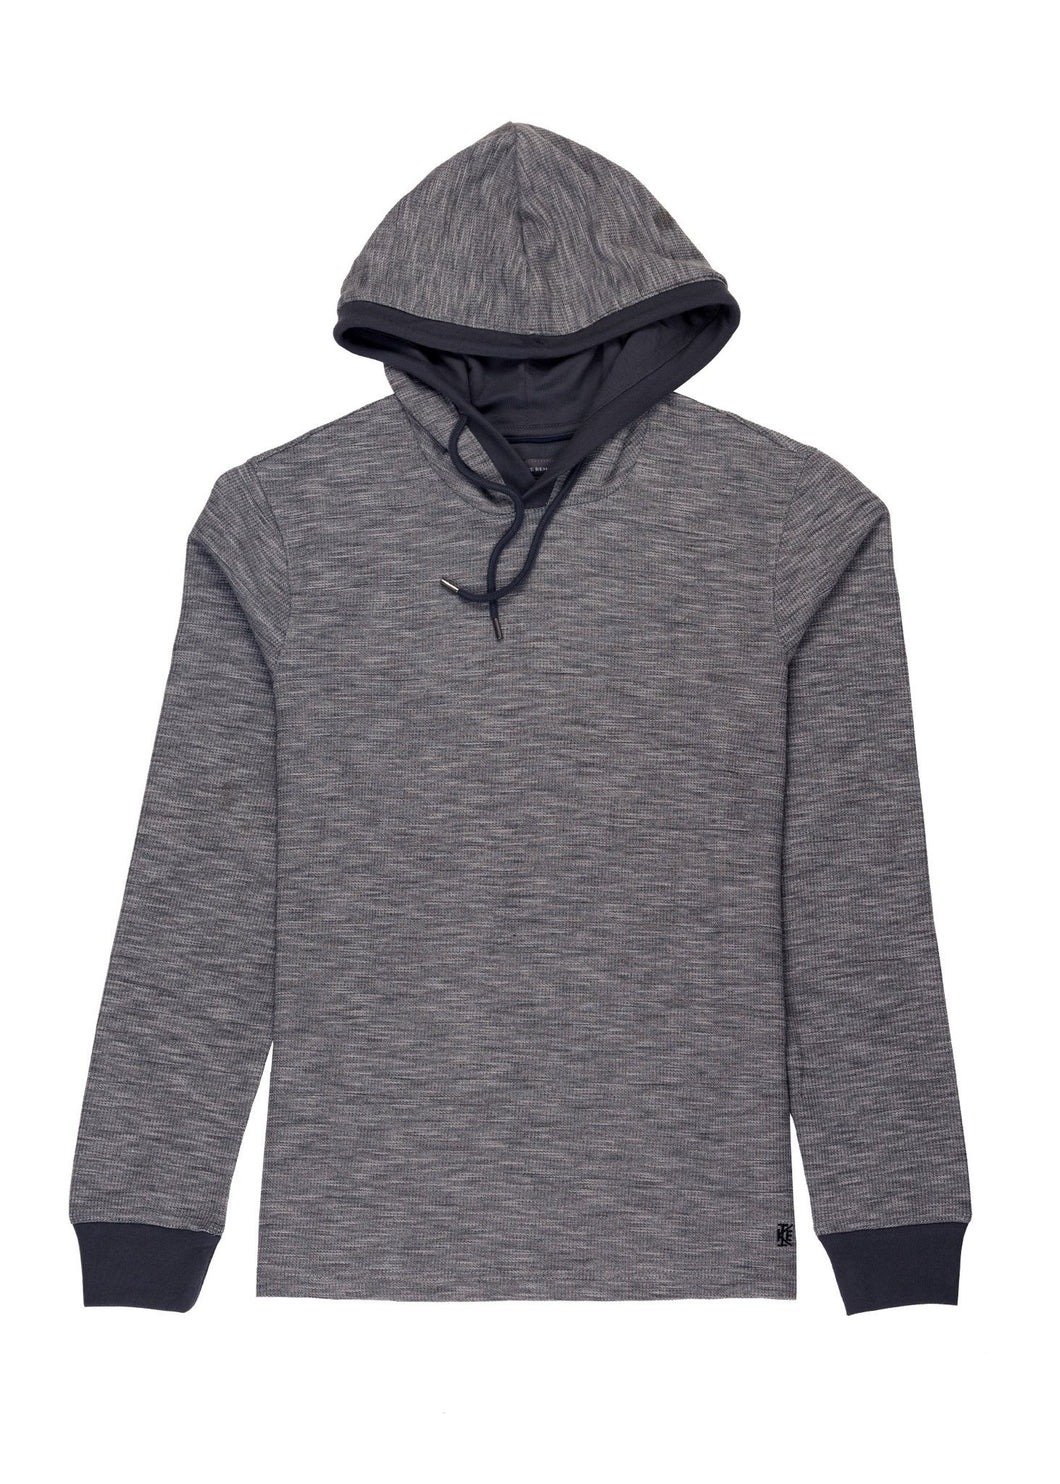 Grey Ike by Ike Behar Performance Hoodie